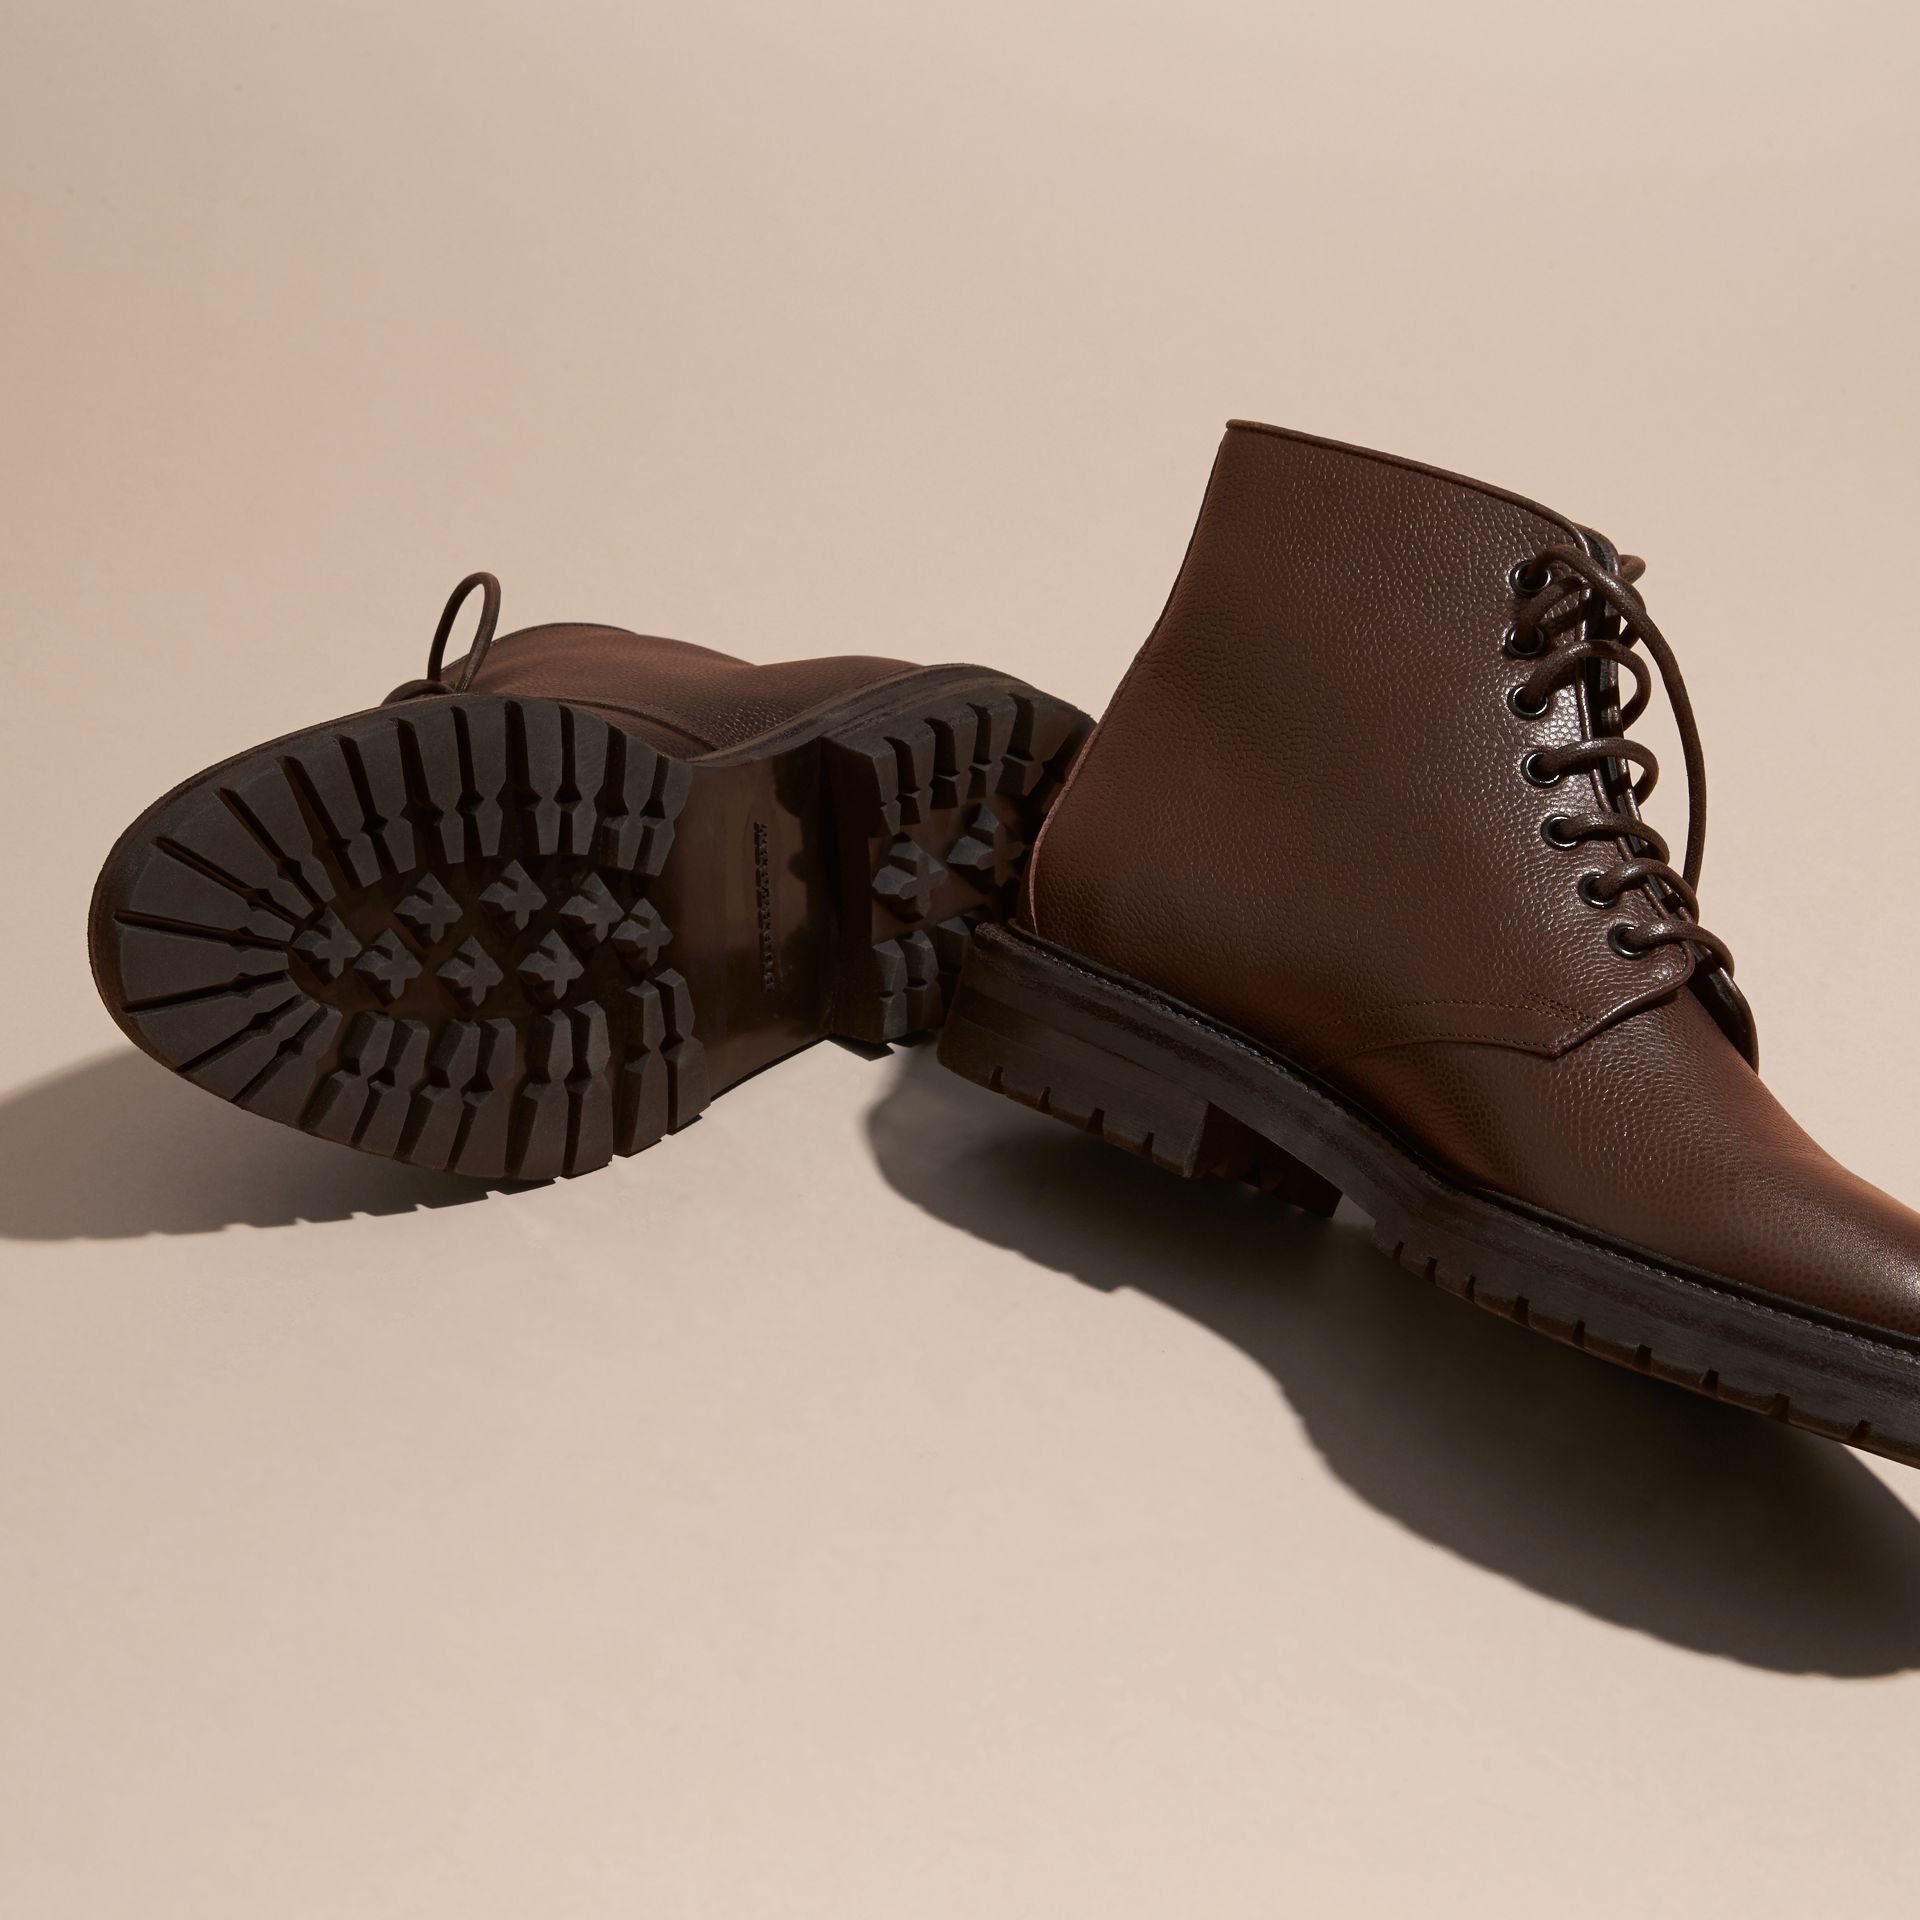 Chestnut Lace-up Grainy Leather Boots Chestnut - gallery image 5